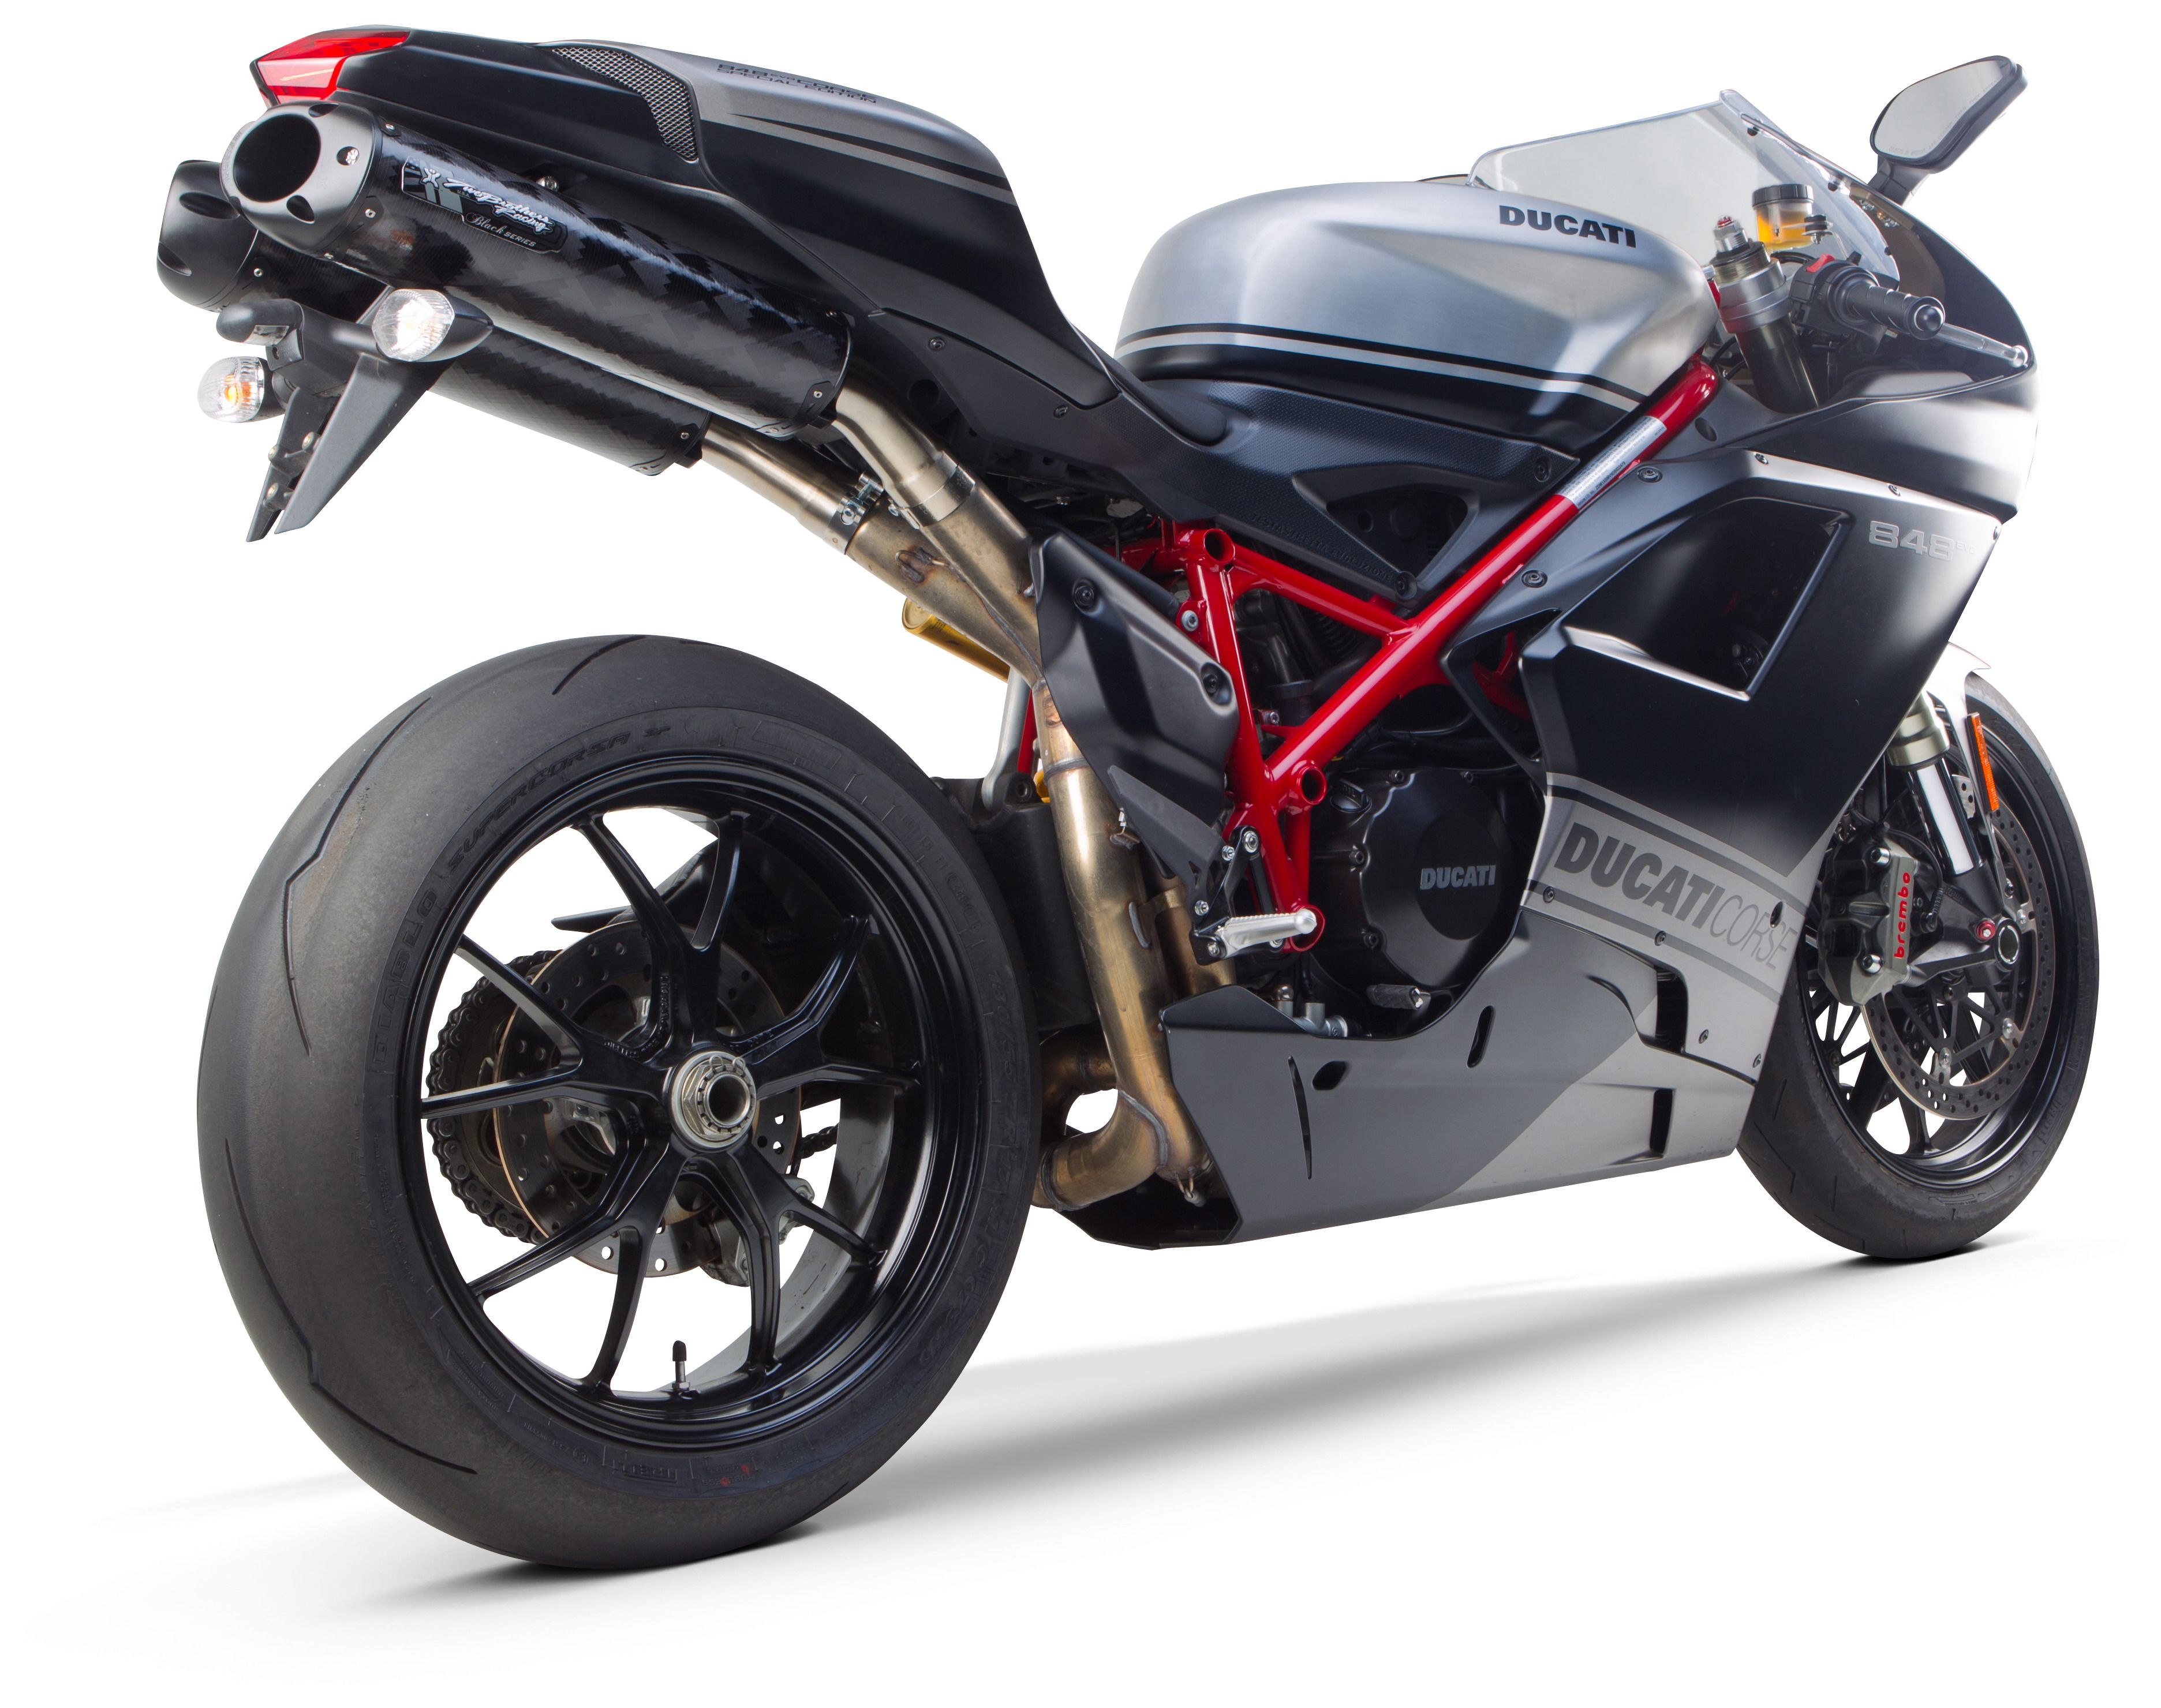 Two brothers m2 black series slip on exhaust ducati 848 1098 1198 cycle gear